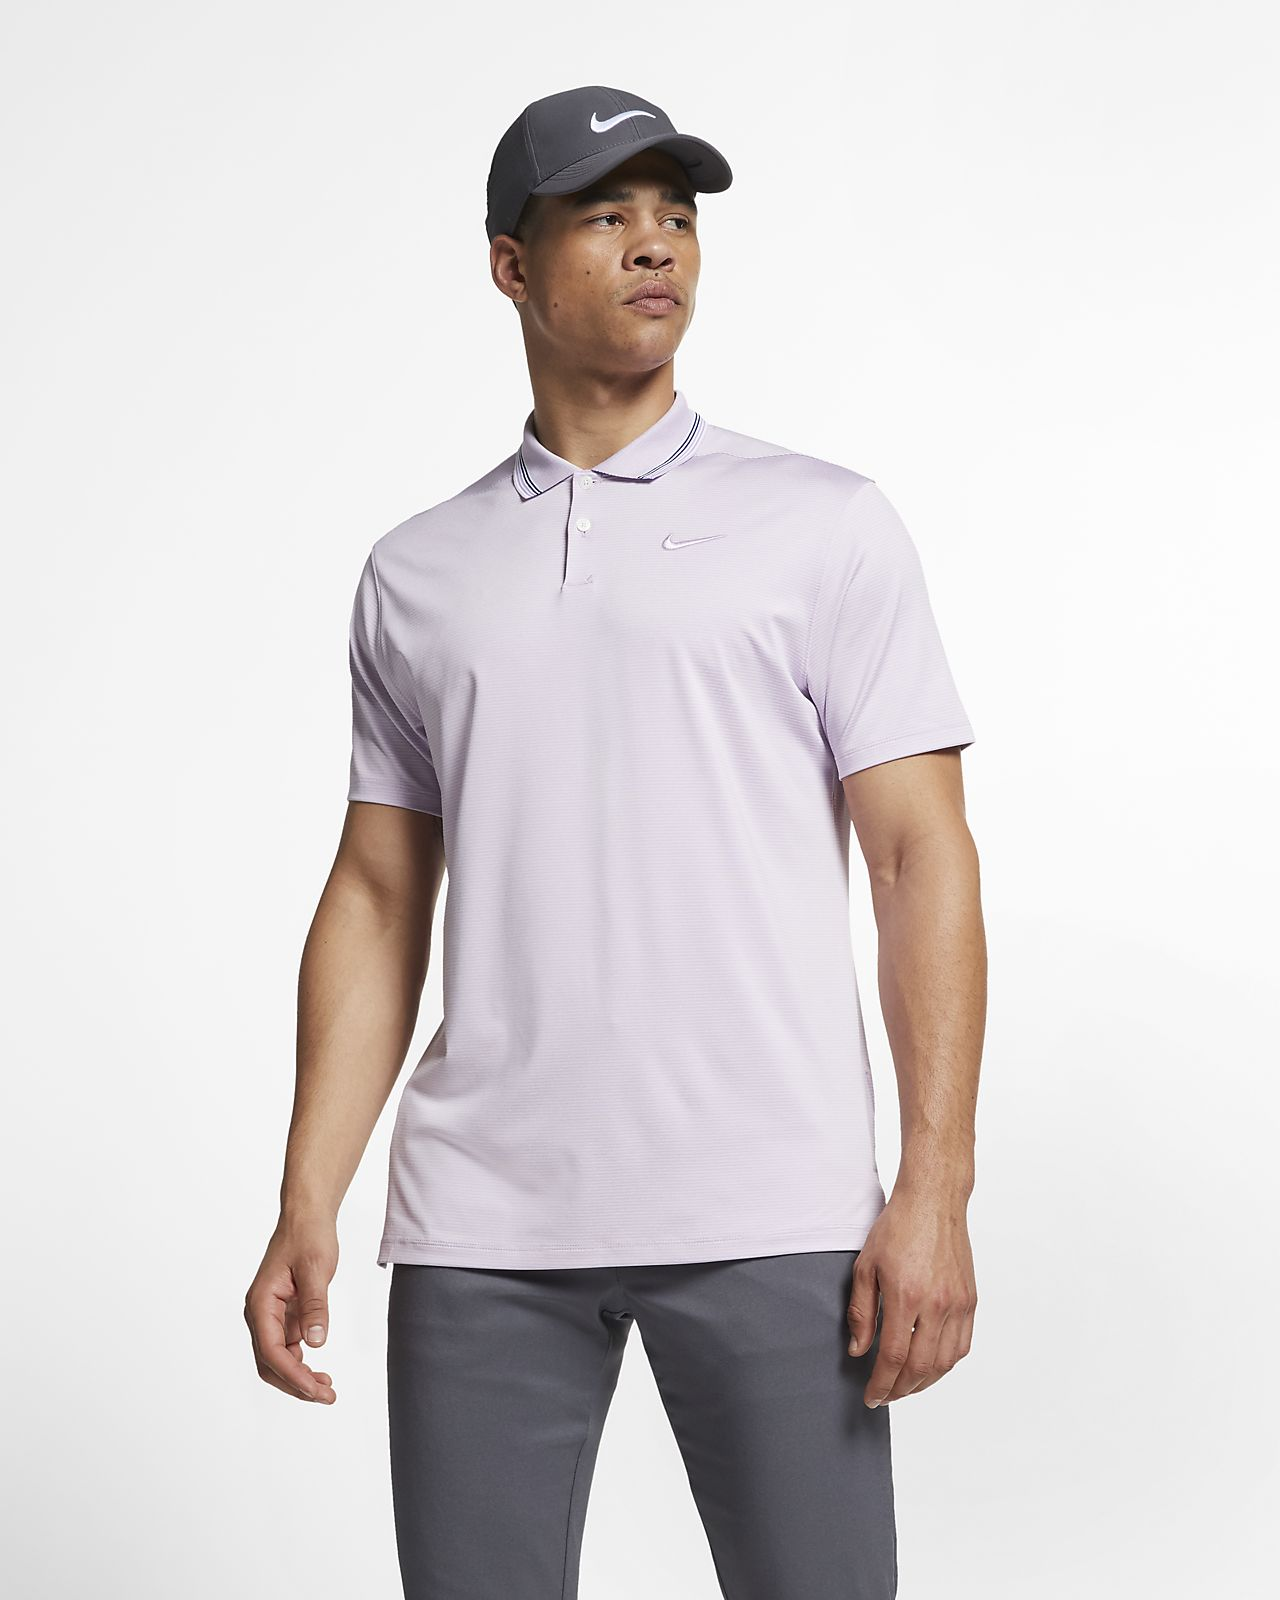 f5ab827ac Nike Dri-FIT Vapor Men's Golf Polo. Nike.com